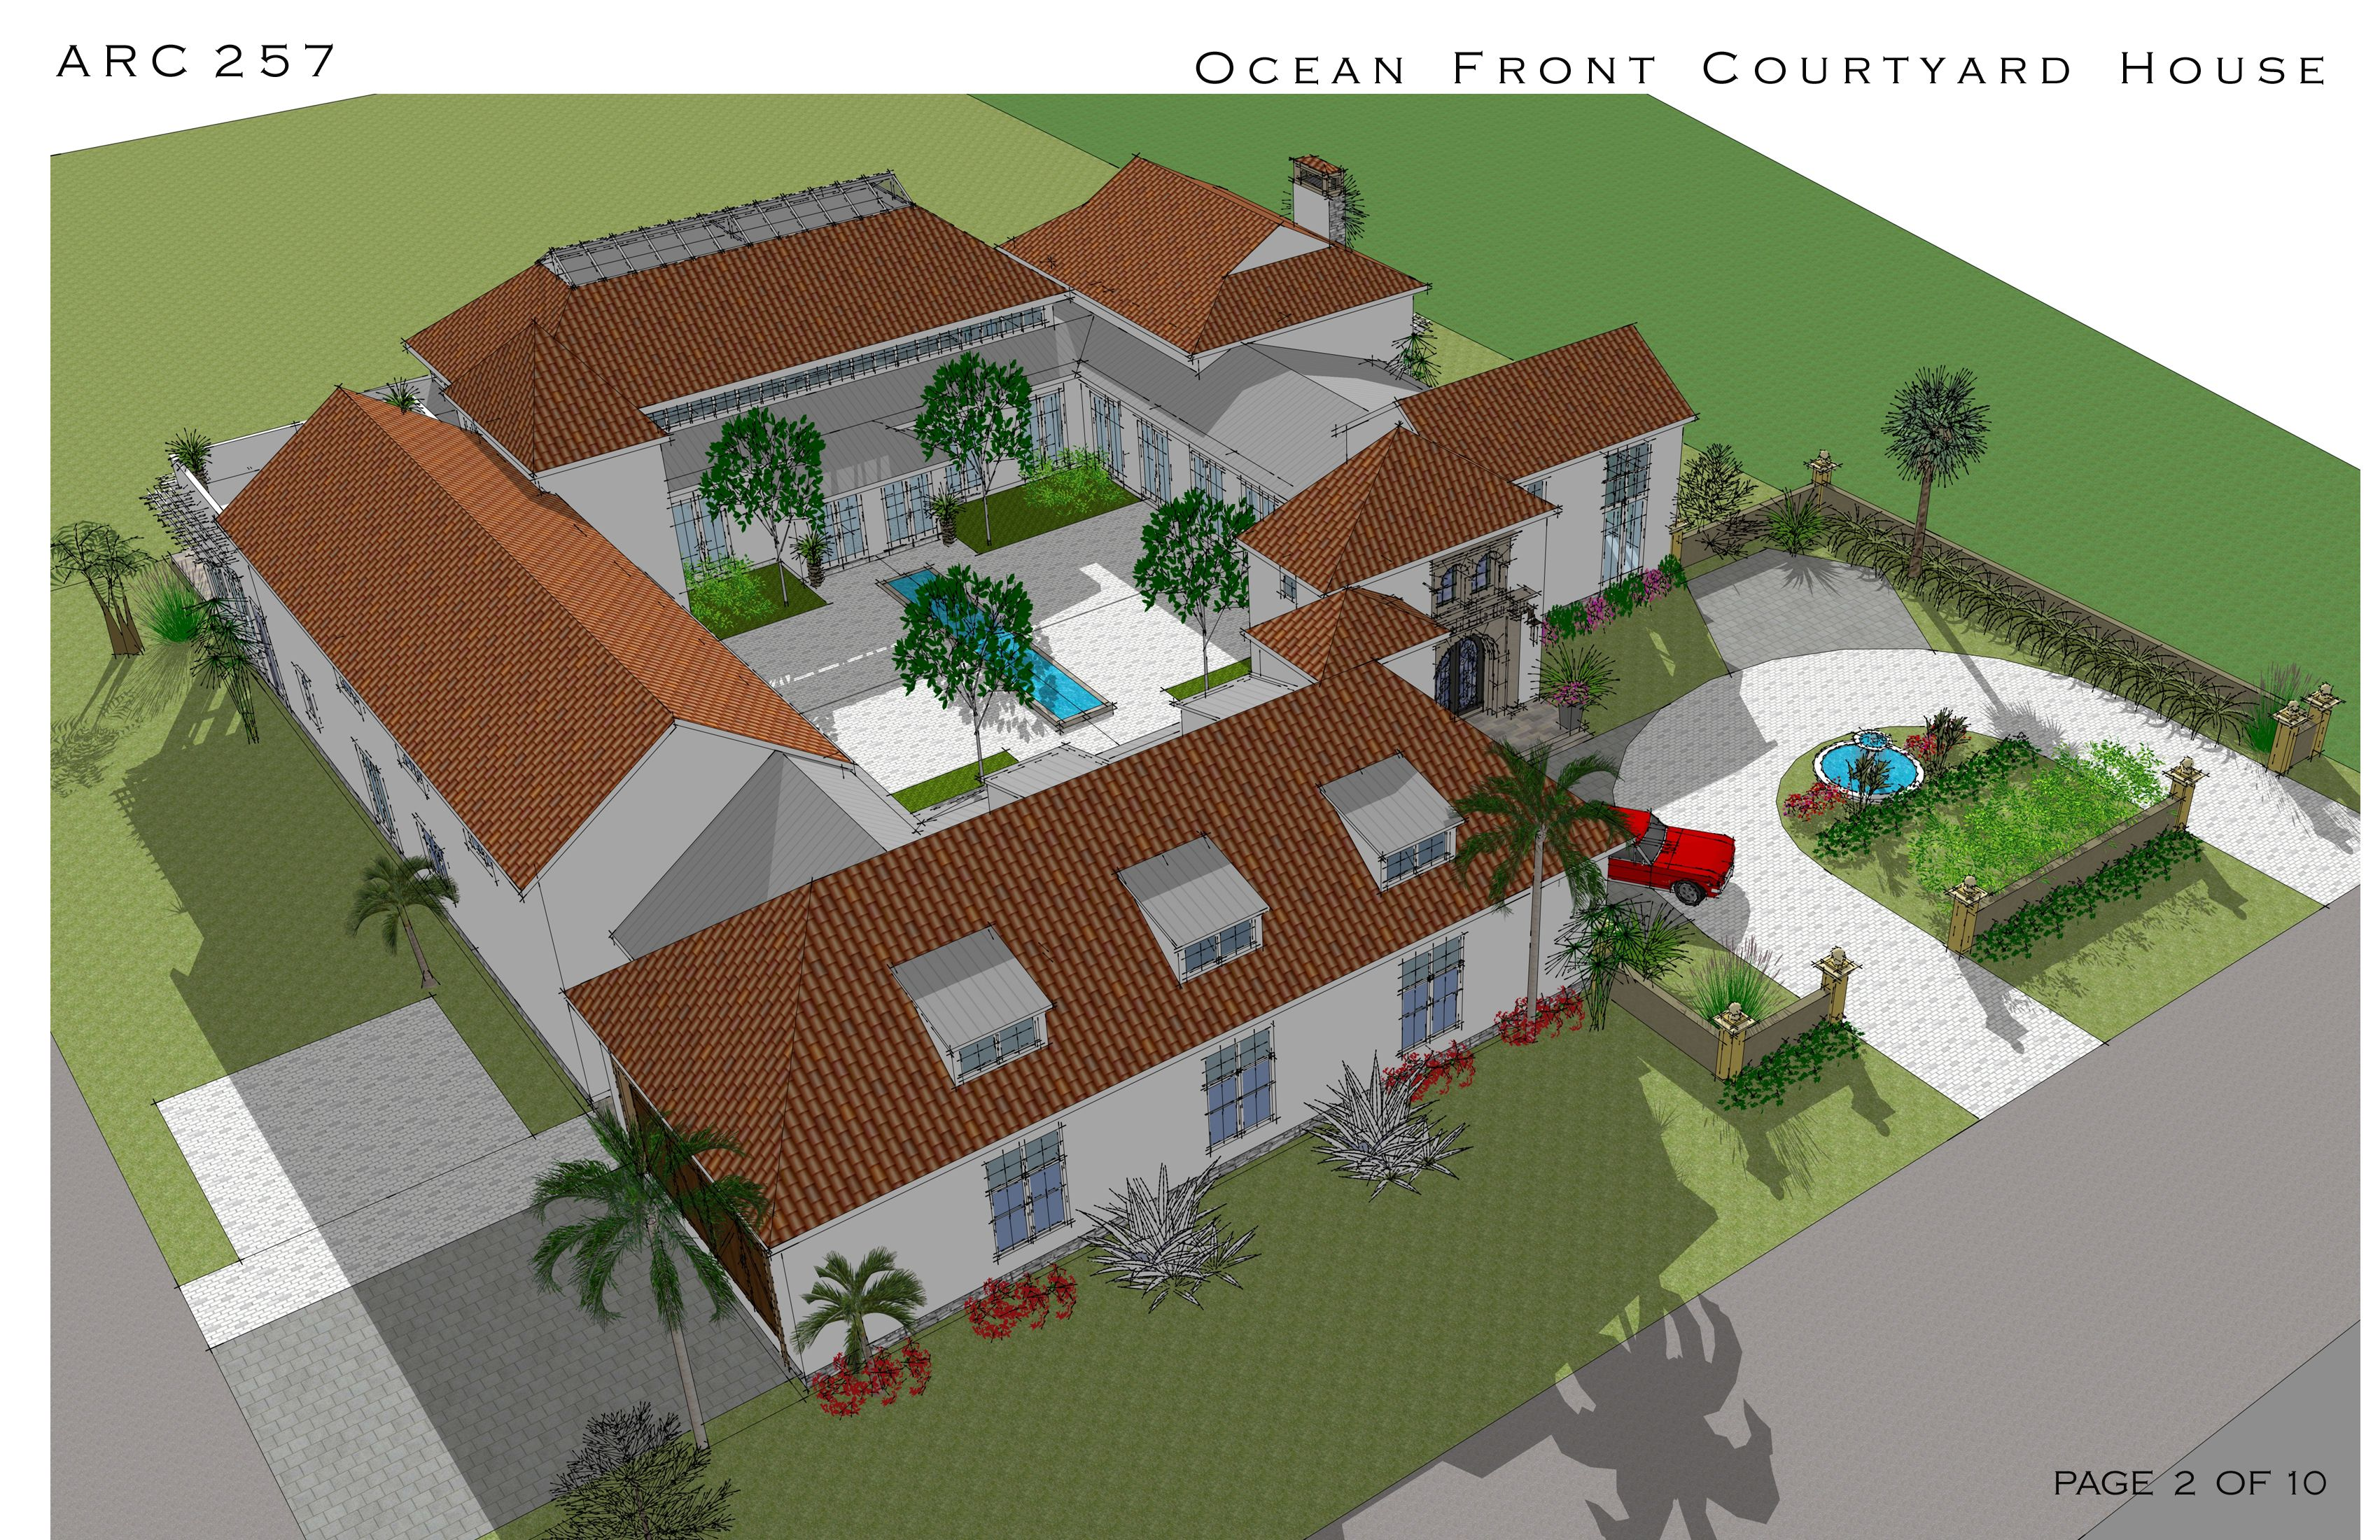 Multi Story Family Homes Designed by Arcadia Design Oceanfront Courtyard House Cocoa Beach US